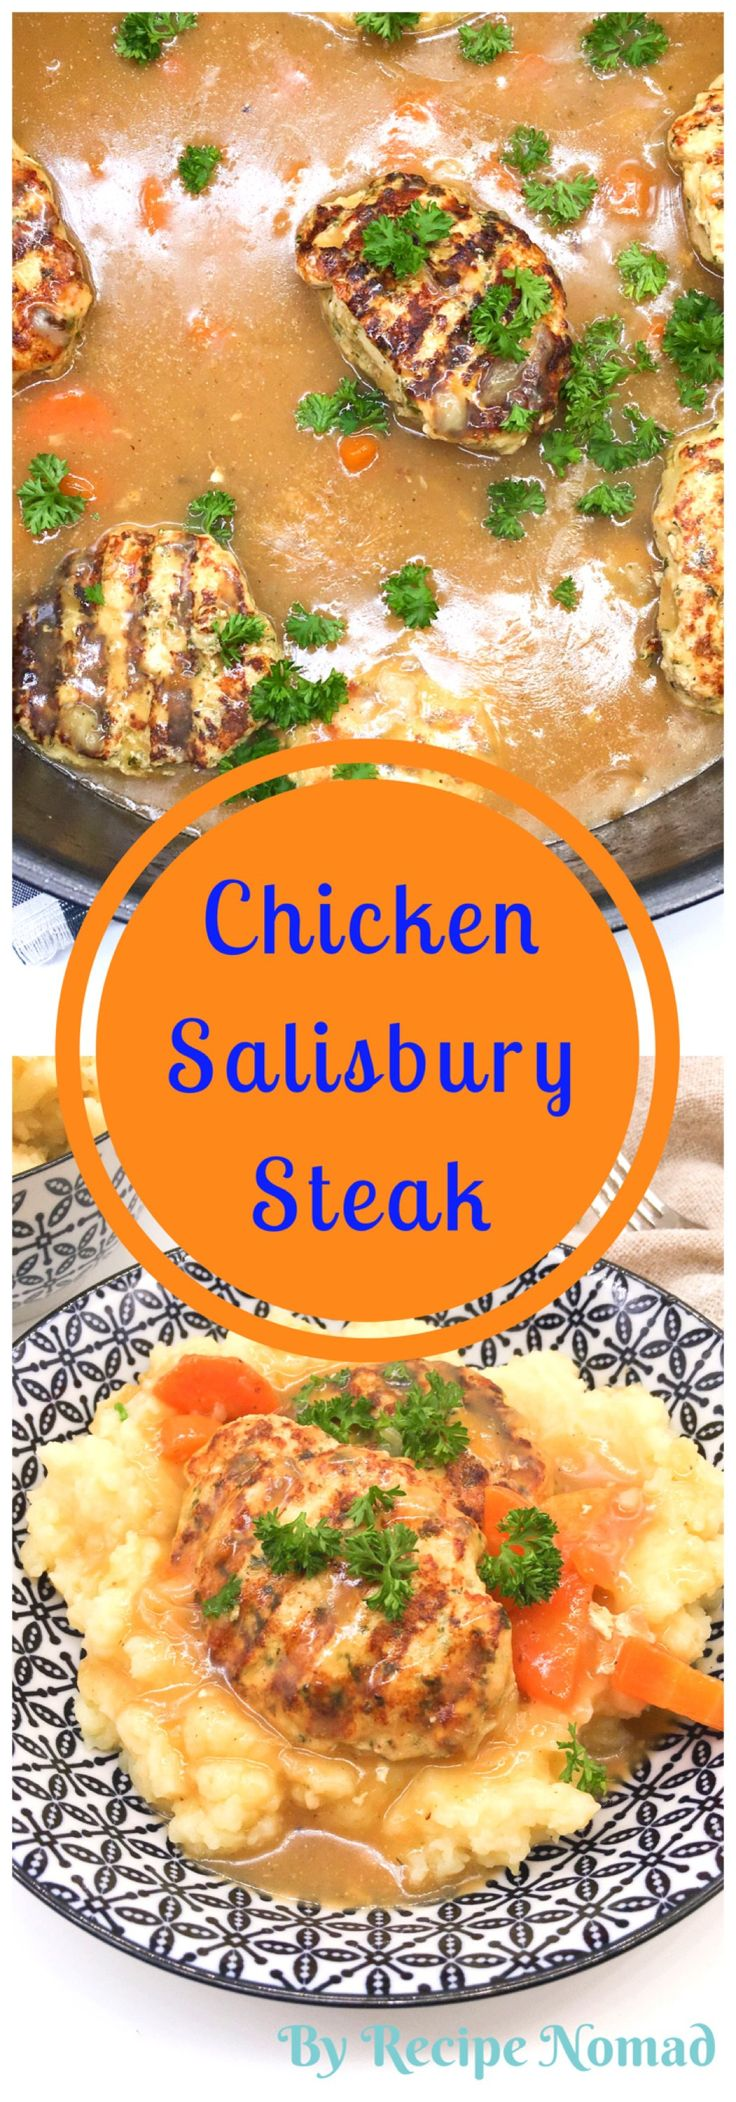 A healthy take on a classic Salisbury Steak! Read more to find the secret to moist chicken!  One Pot Chicken Salisbury Steak | Recipe Nomad  http://www.recipenomad.com/one-pot-chicken-salisbury-steak/